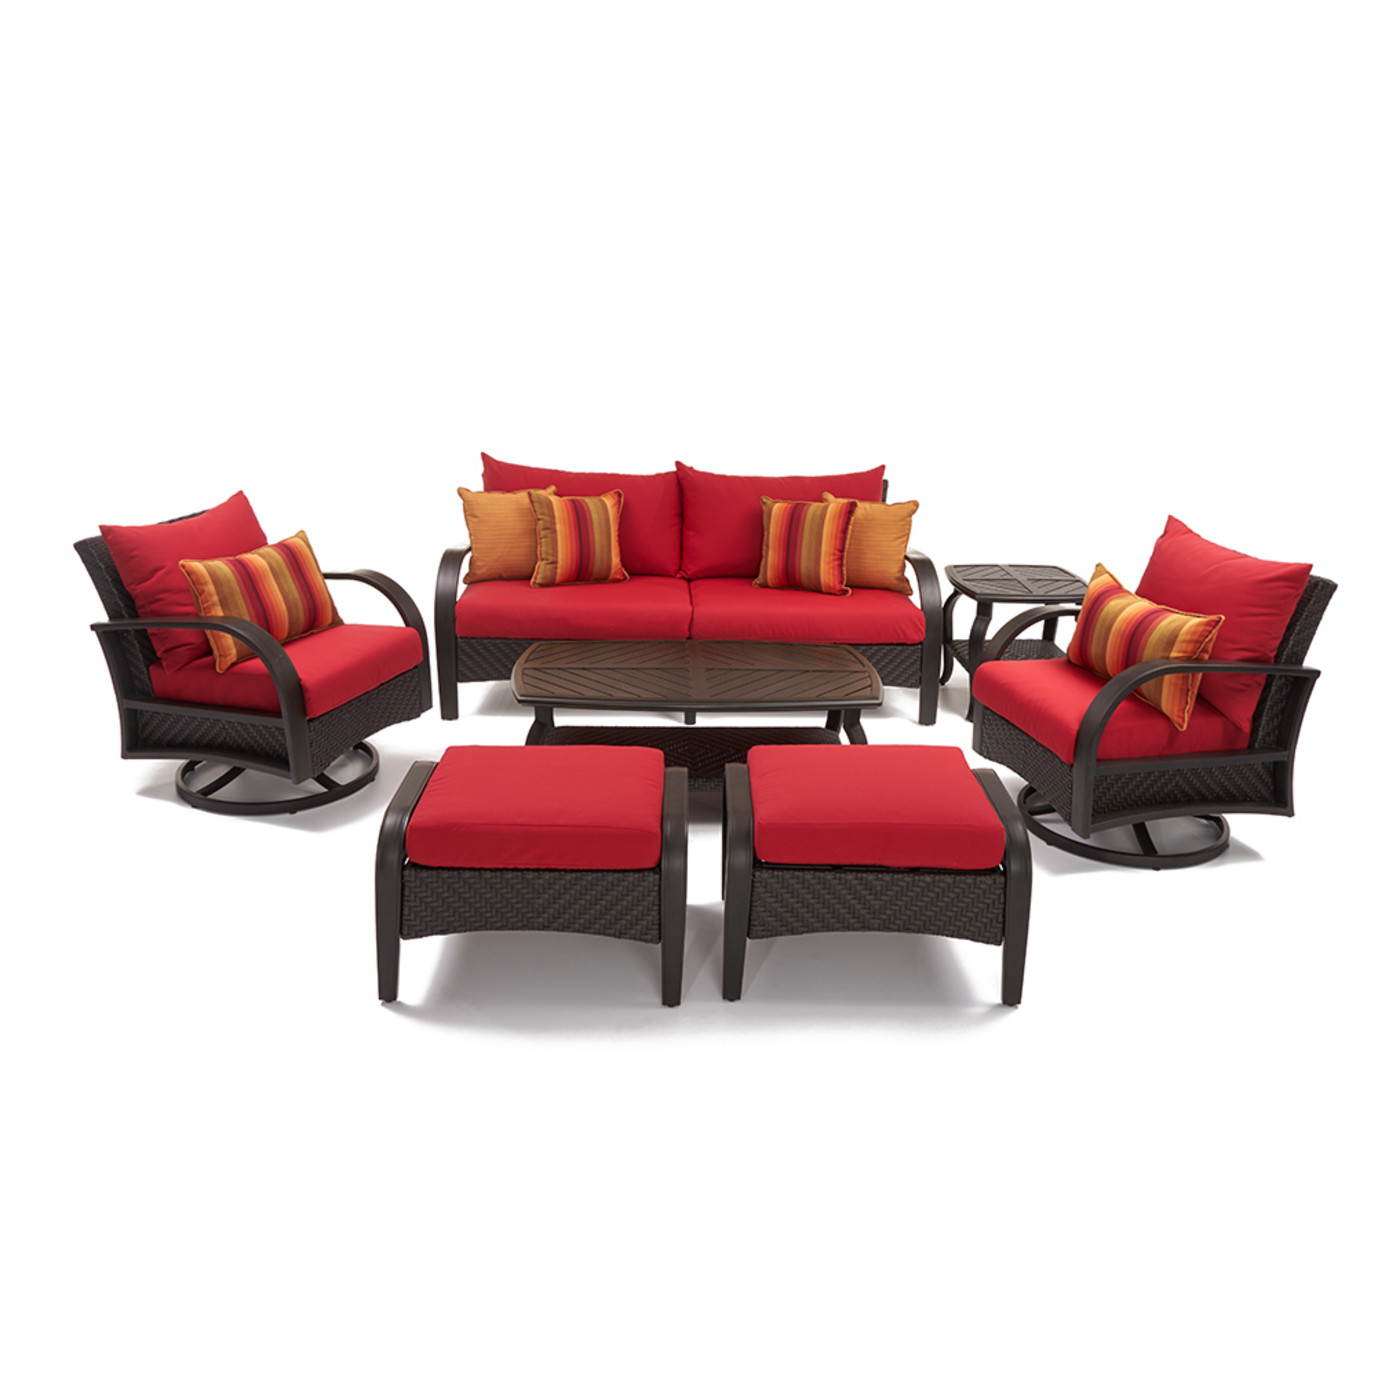 Barcelo™ 7pc Motion Club Deep Seating Set - Sunset Red